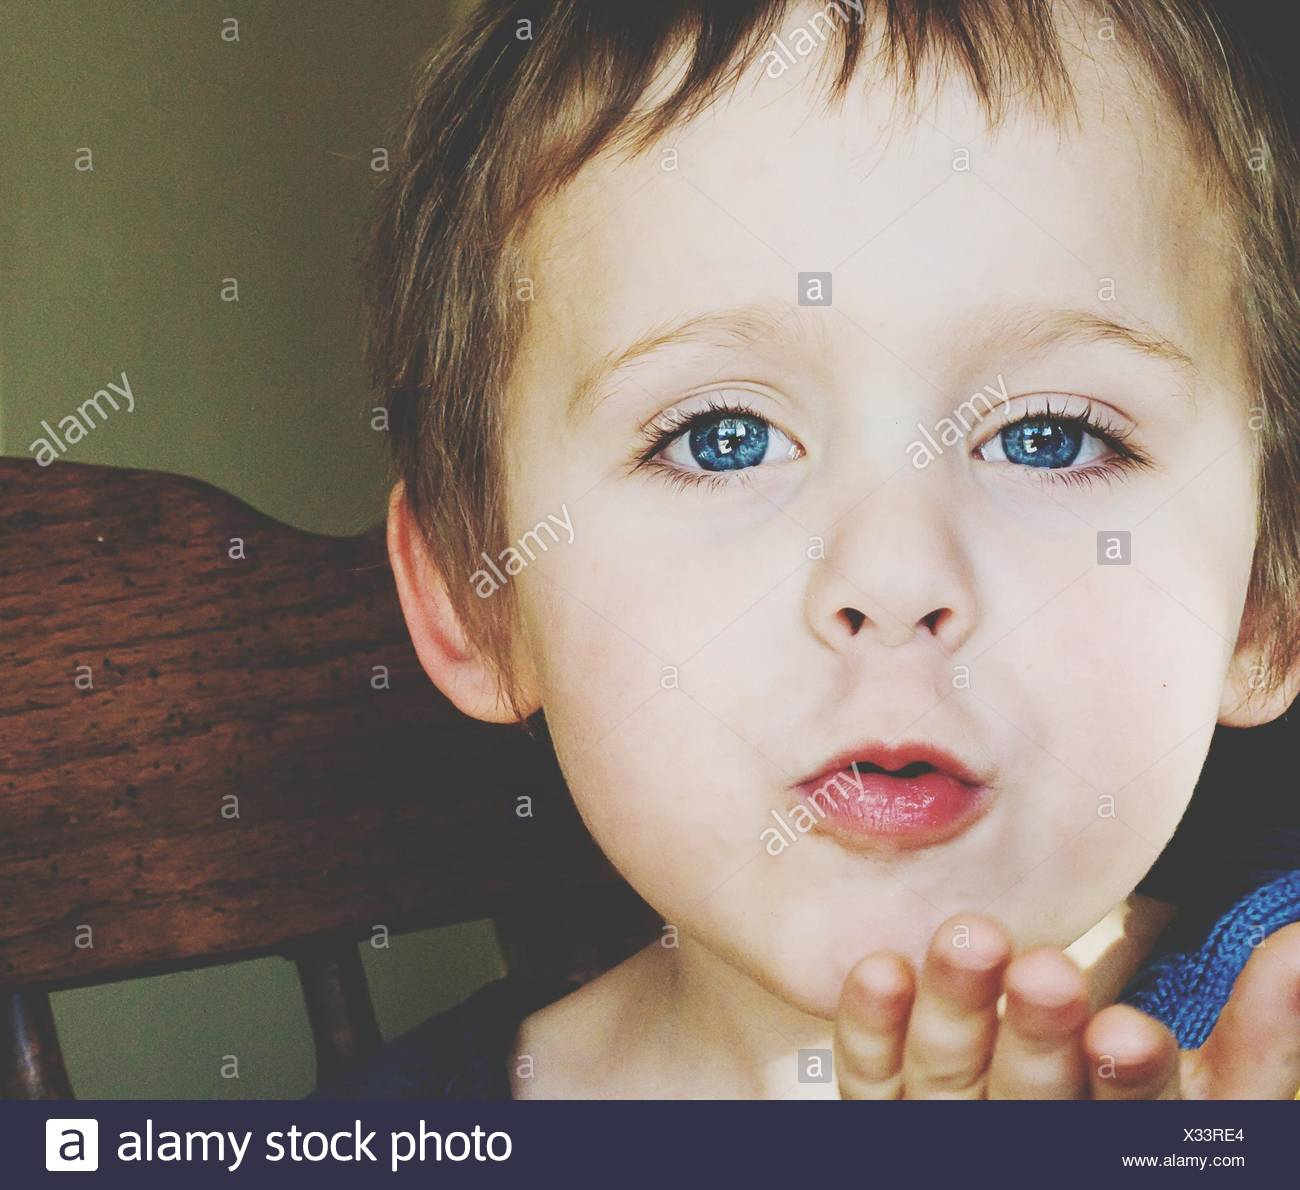 Portrait Of Cute Blue Eyed Boy Blowing A Kiss - Stock Image